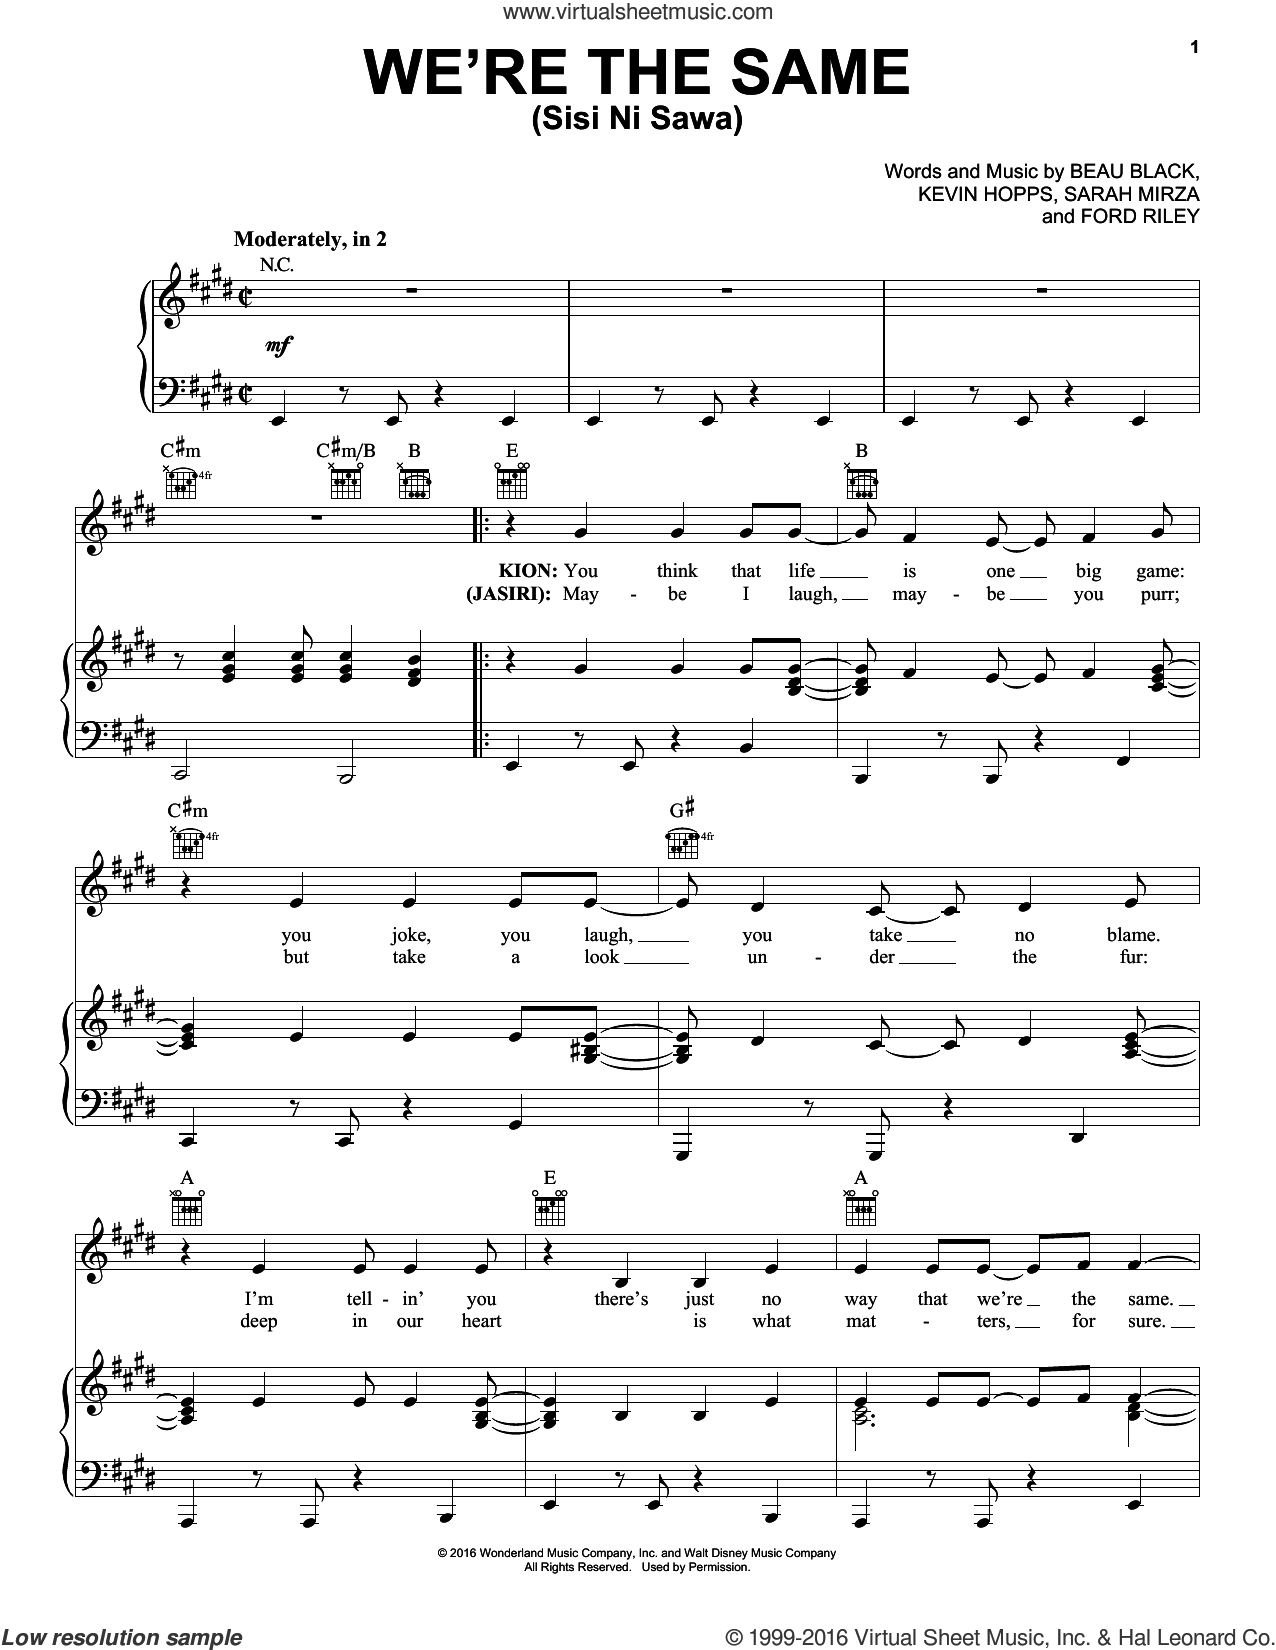 We're The Same (Sis Ni Sawa) sheet music for voice, piano or guitar by Sarah Mirza, Beau Black, Ford Riley and Kevin Hopps, intermediate skill level